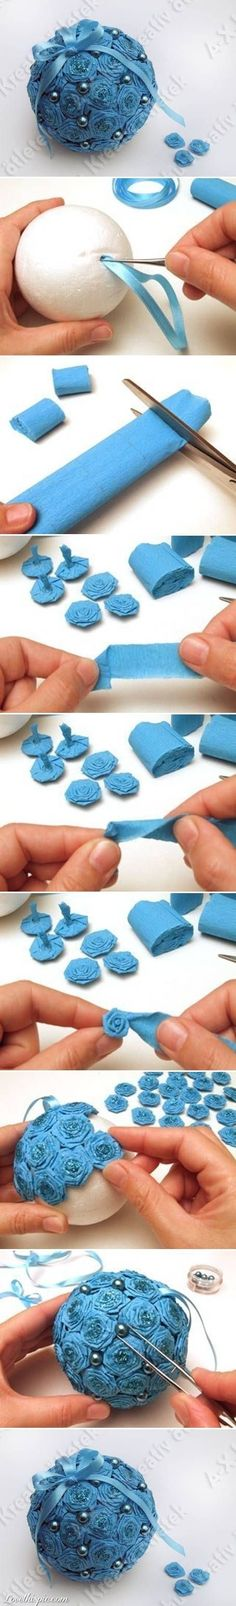 DIY Crepe Paper Flower Ball Pictures, Photos, and Images for Facebook, Tumblr, Pinterest, and Twitter